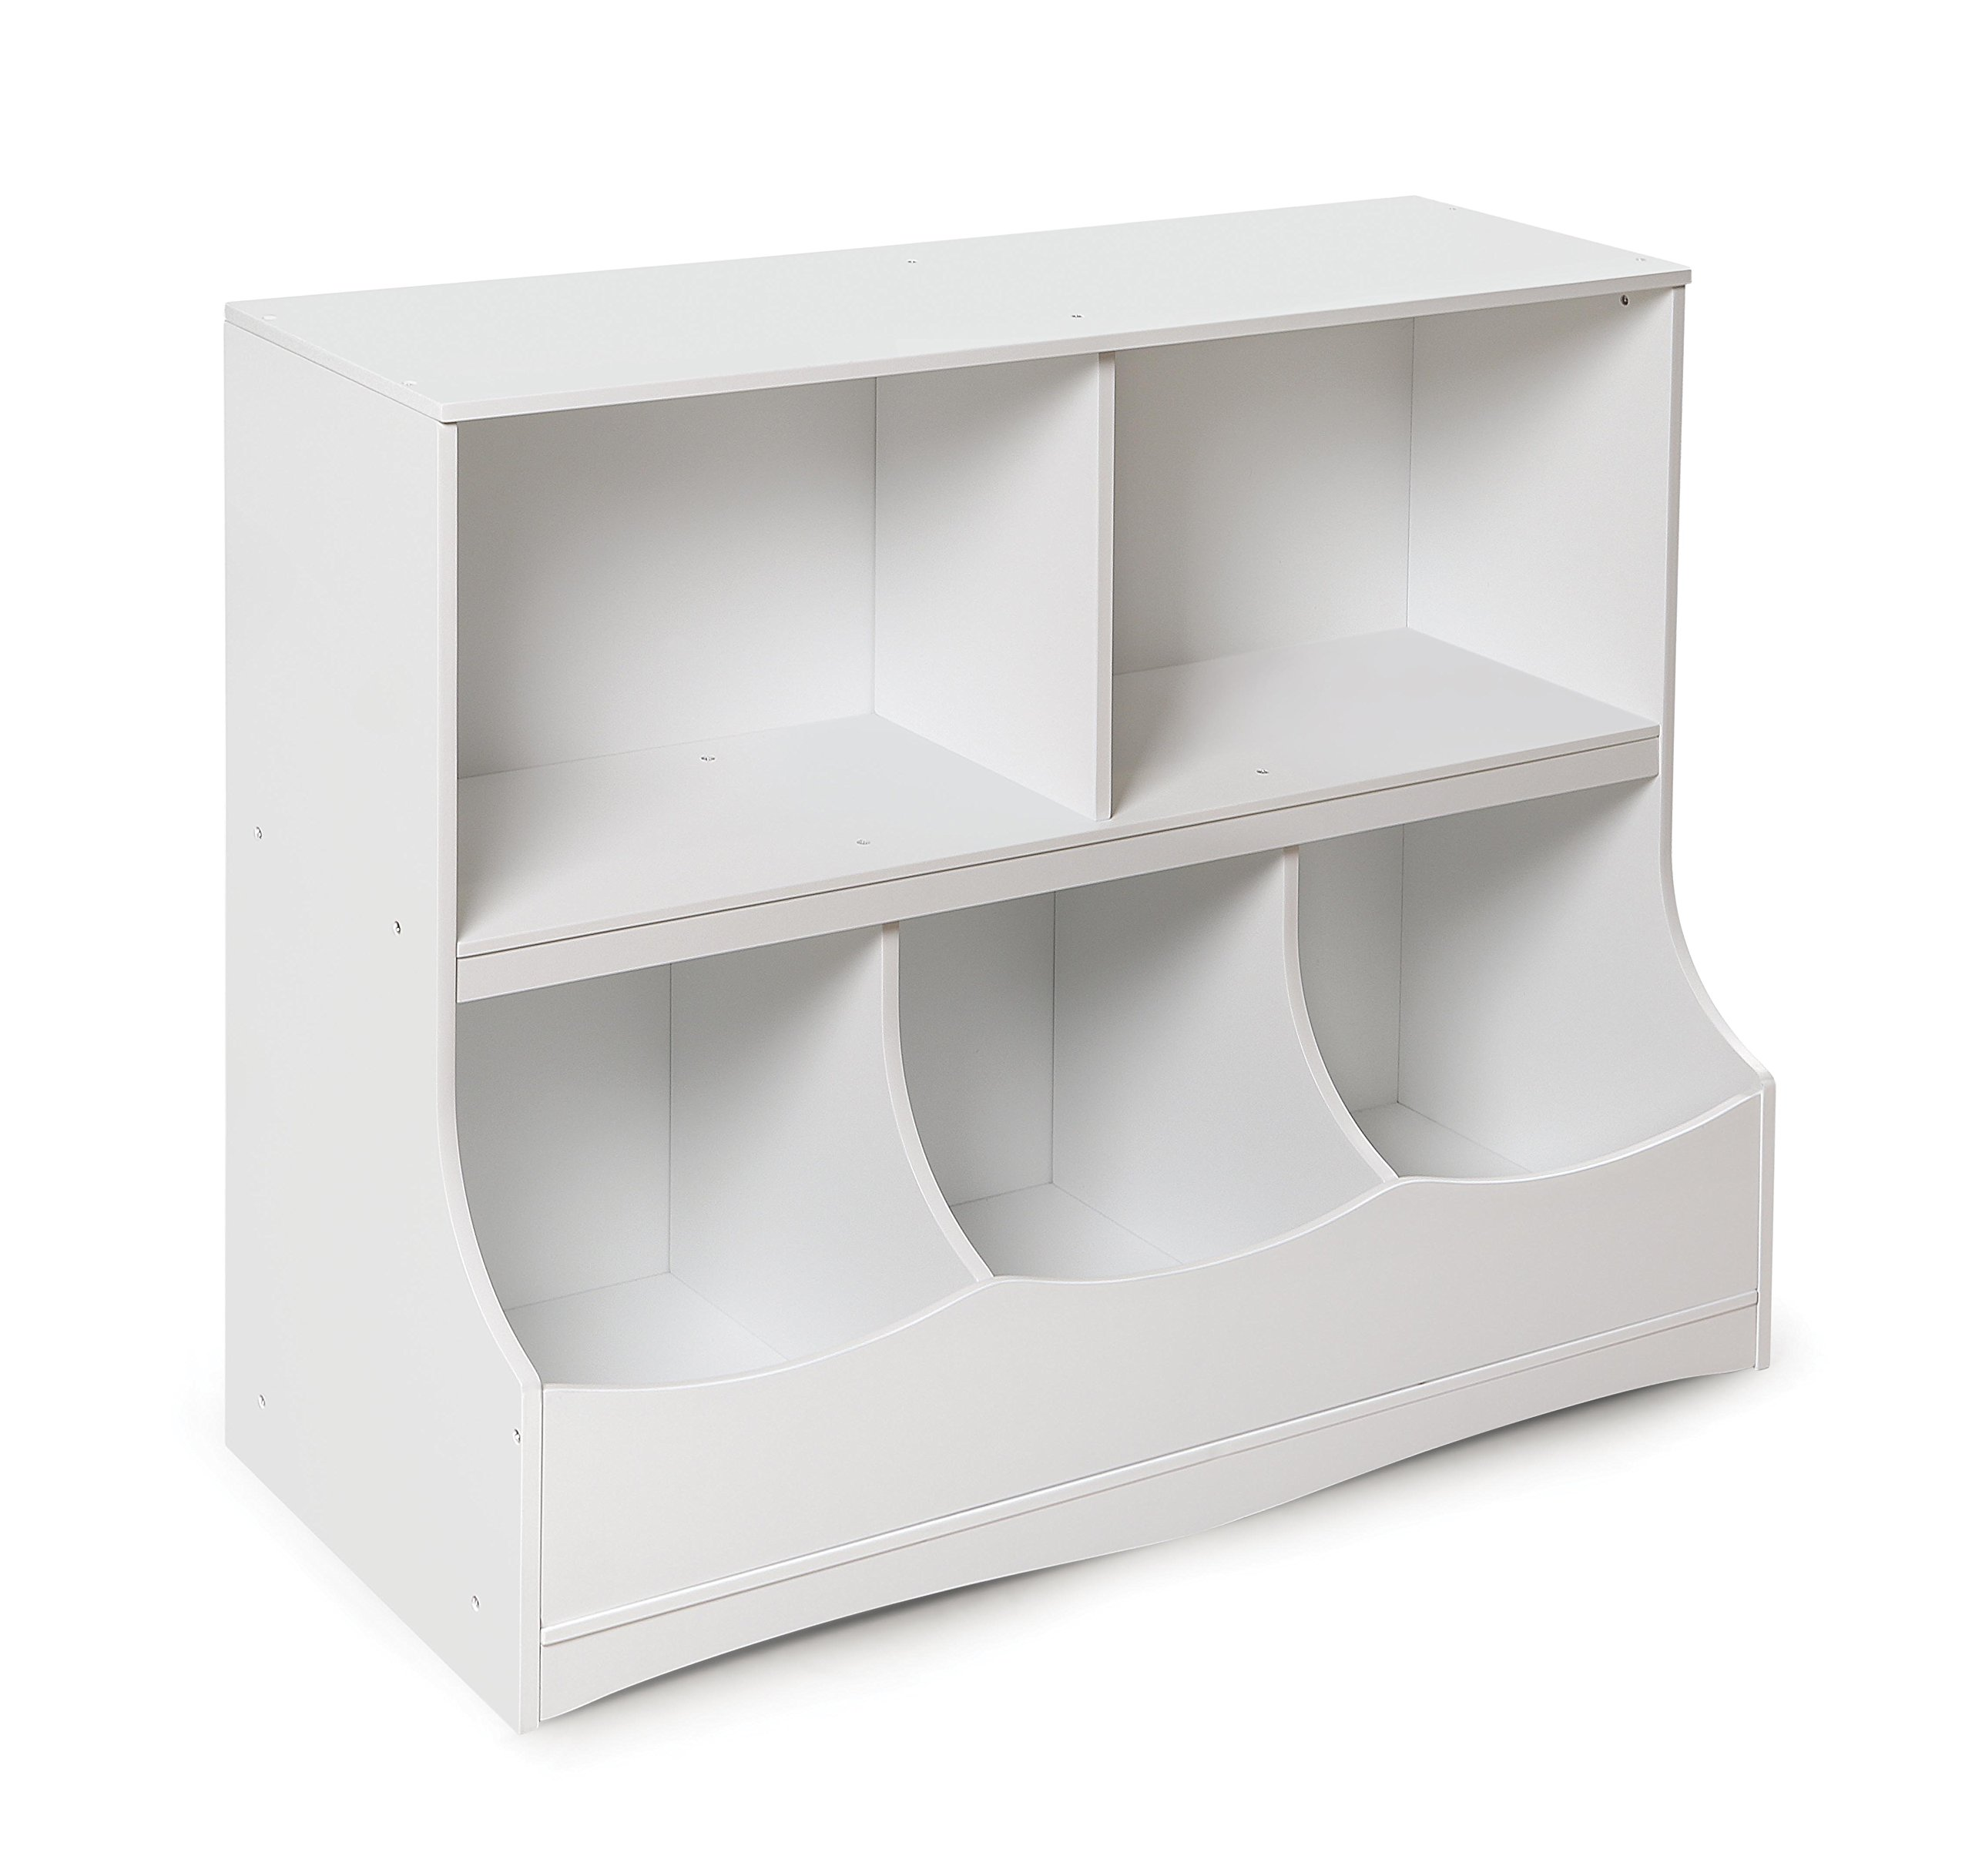 nice bench pinnig shoe size underneath entry doors of shelf for toy cubbies kids foyers space with black wooden hall your cabinet wall entryway uncategorized small seat full cubby clothes cub room organizer cubbie decorating walmart design ikea storage wood benches target rack